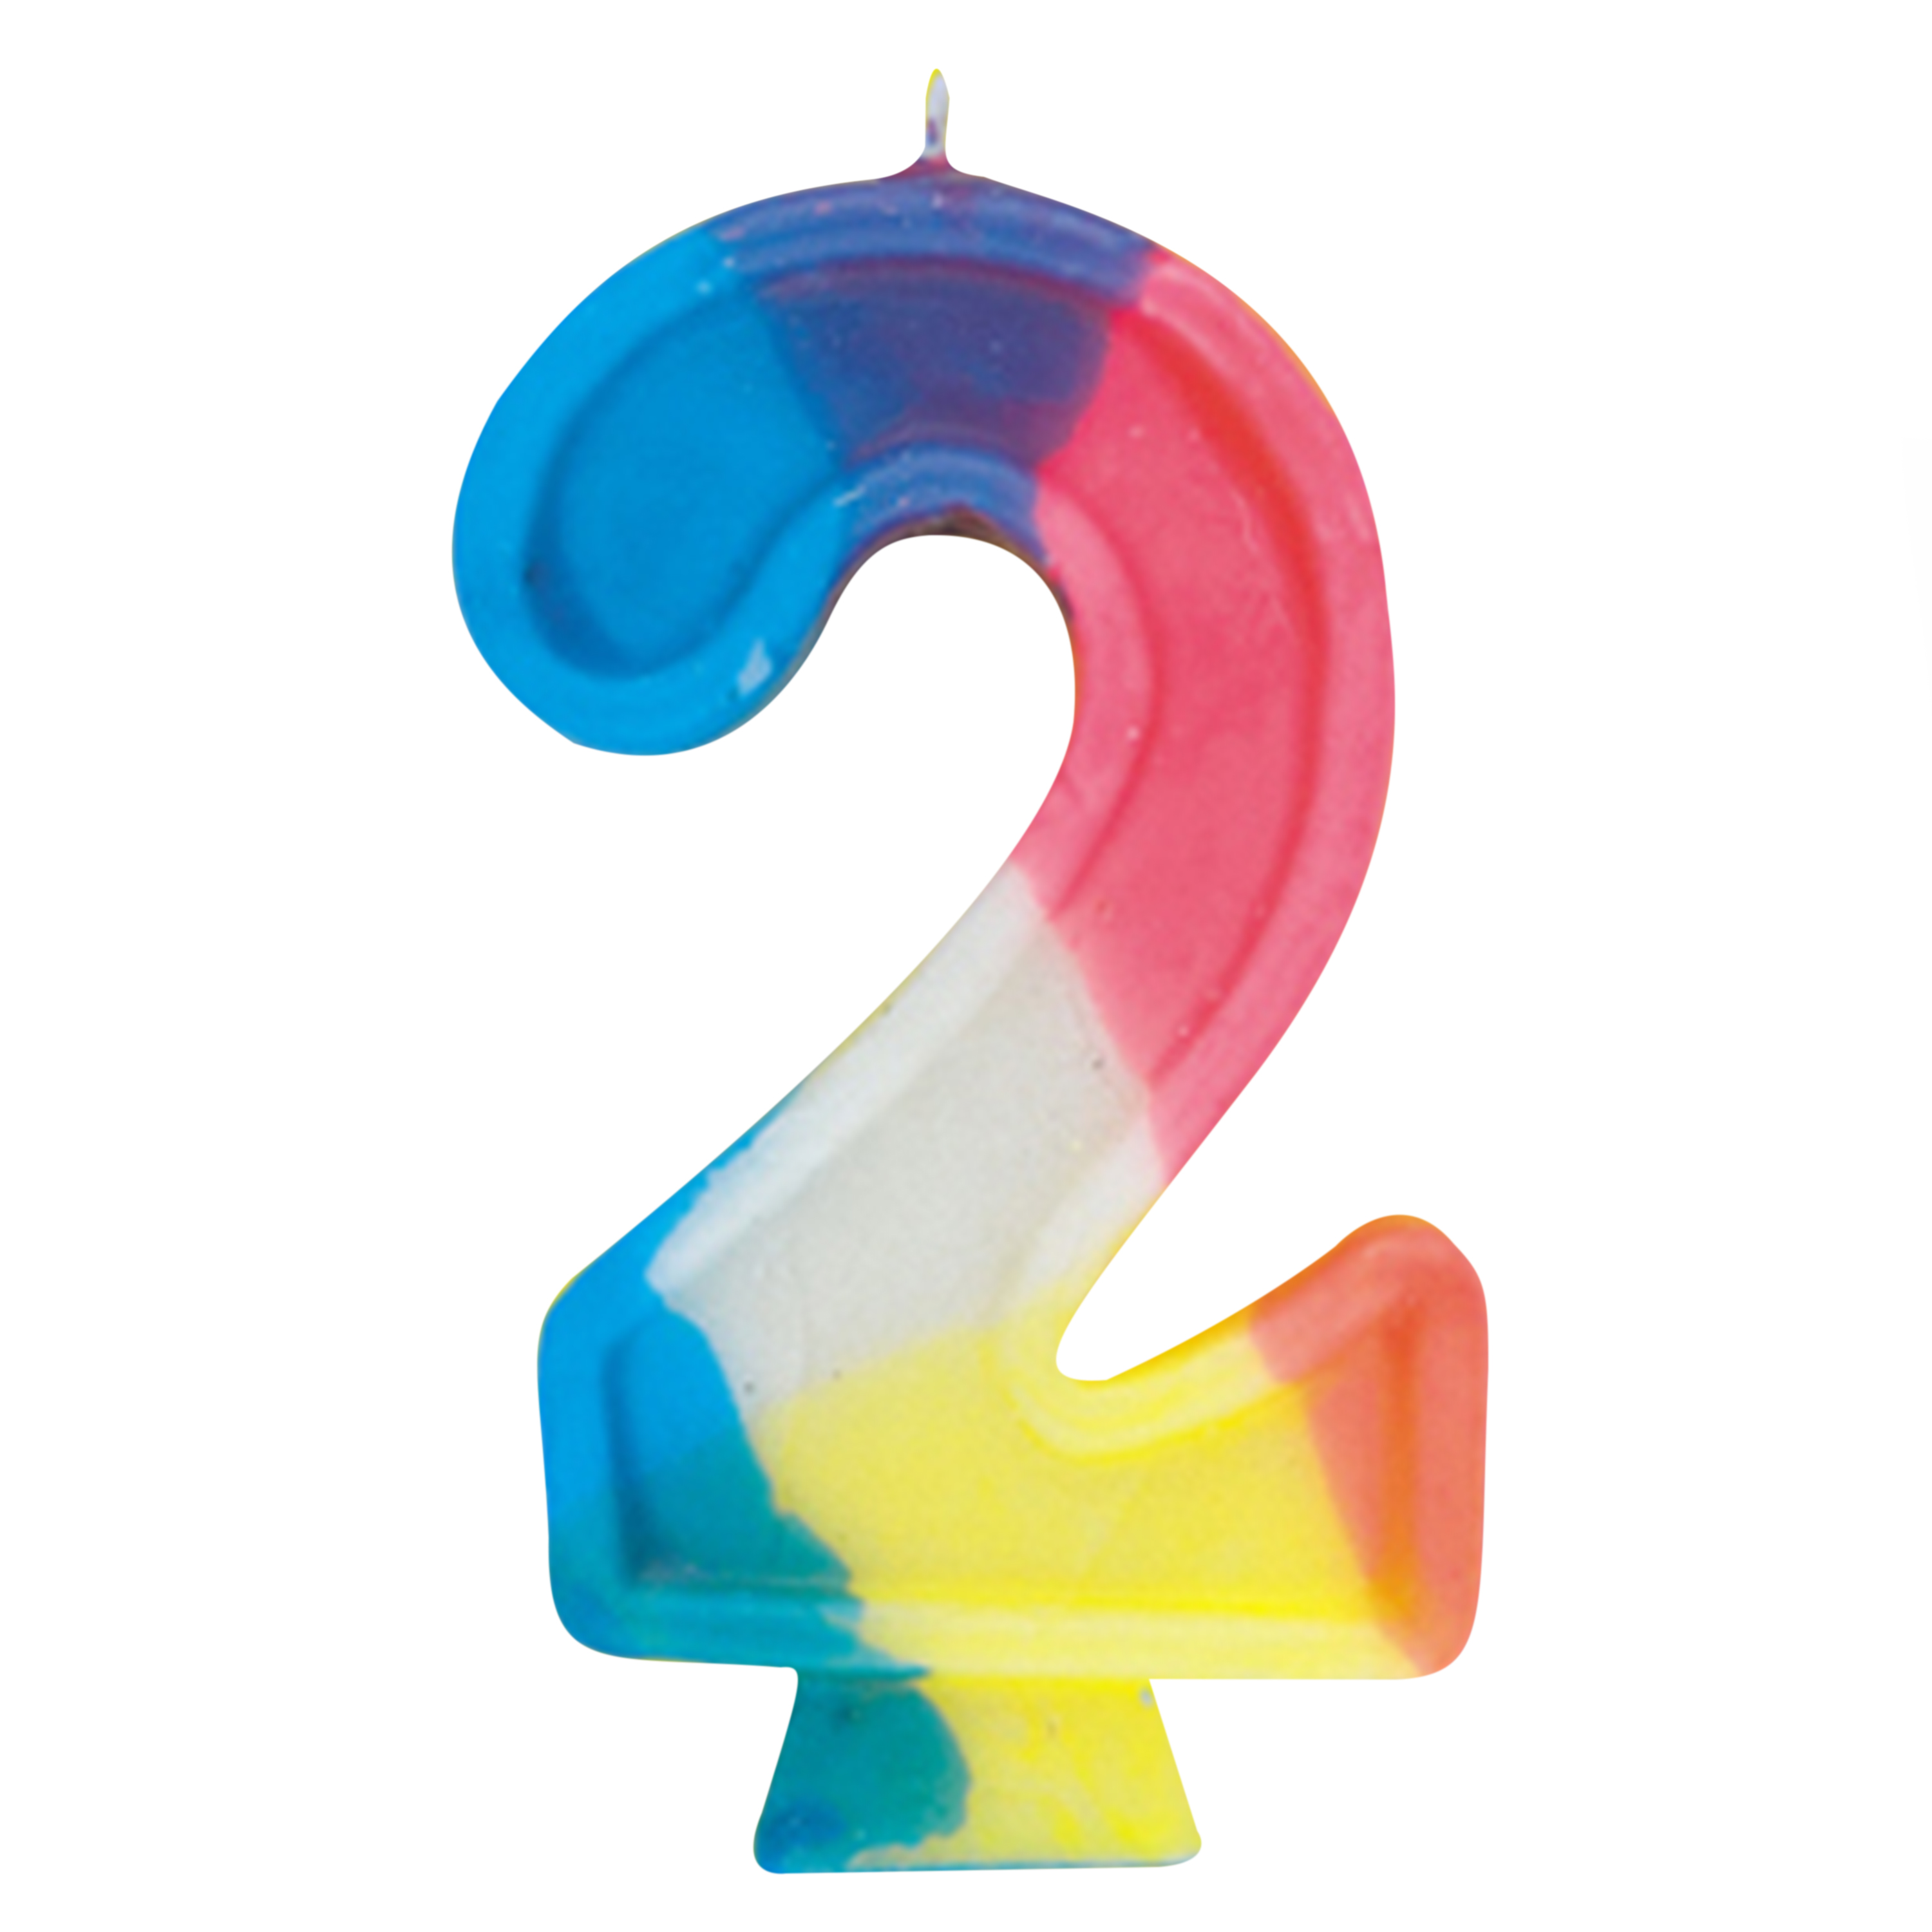 Number 2 Birthday Candle, 2.75 in, Multicolor, 1ct